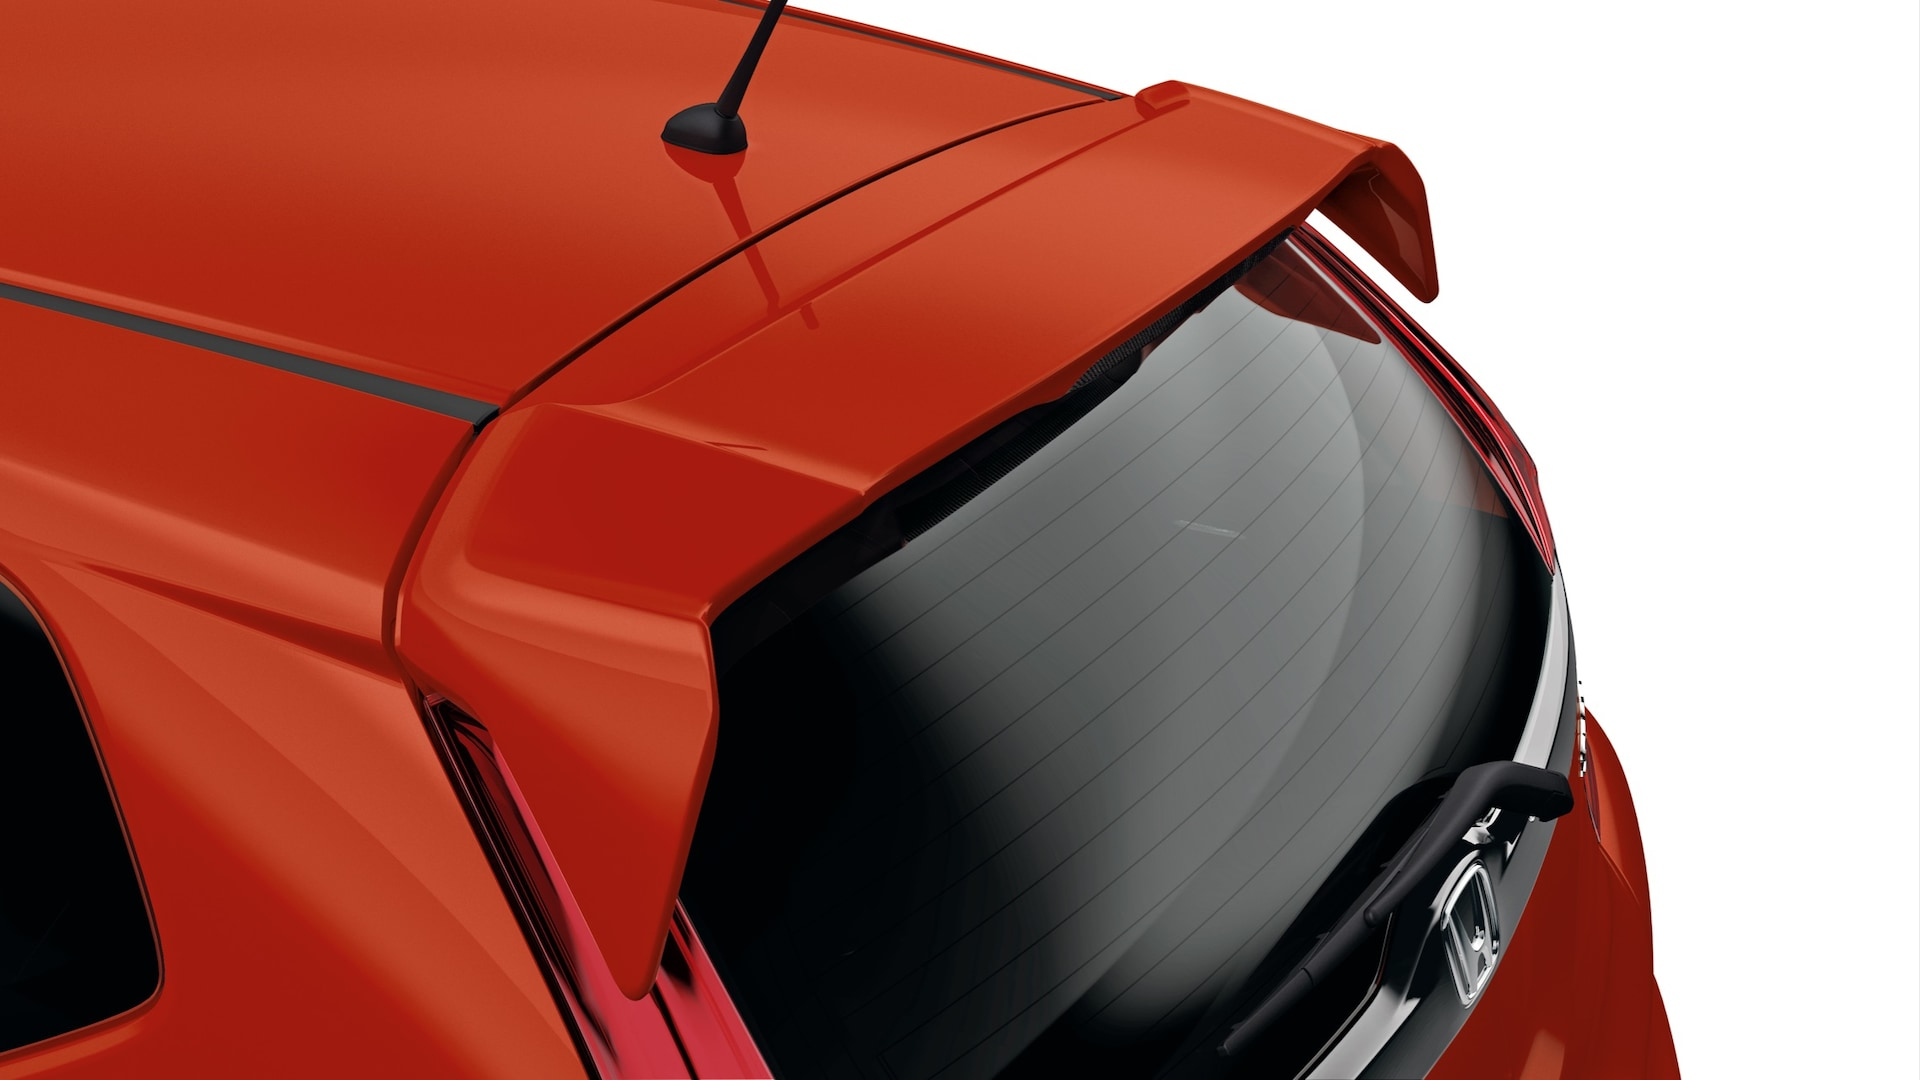 Tailgate spoiler detail on the 2020 Honda Fit in Milano Red.